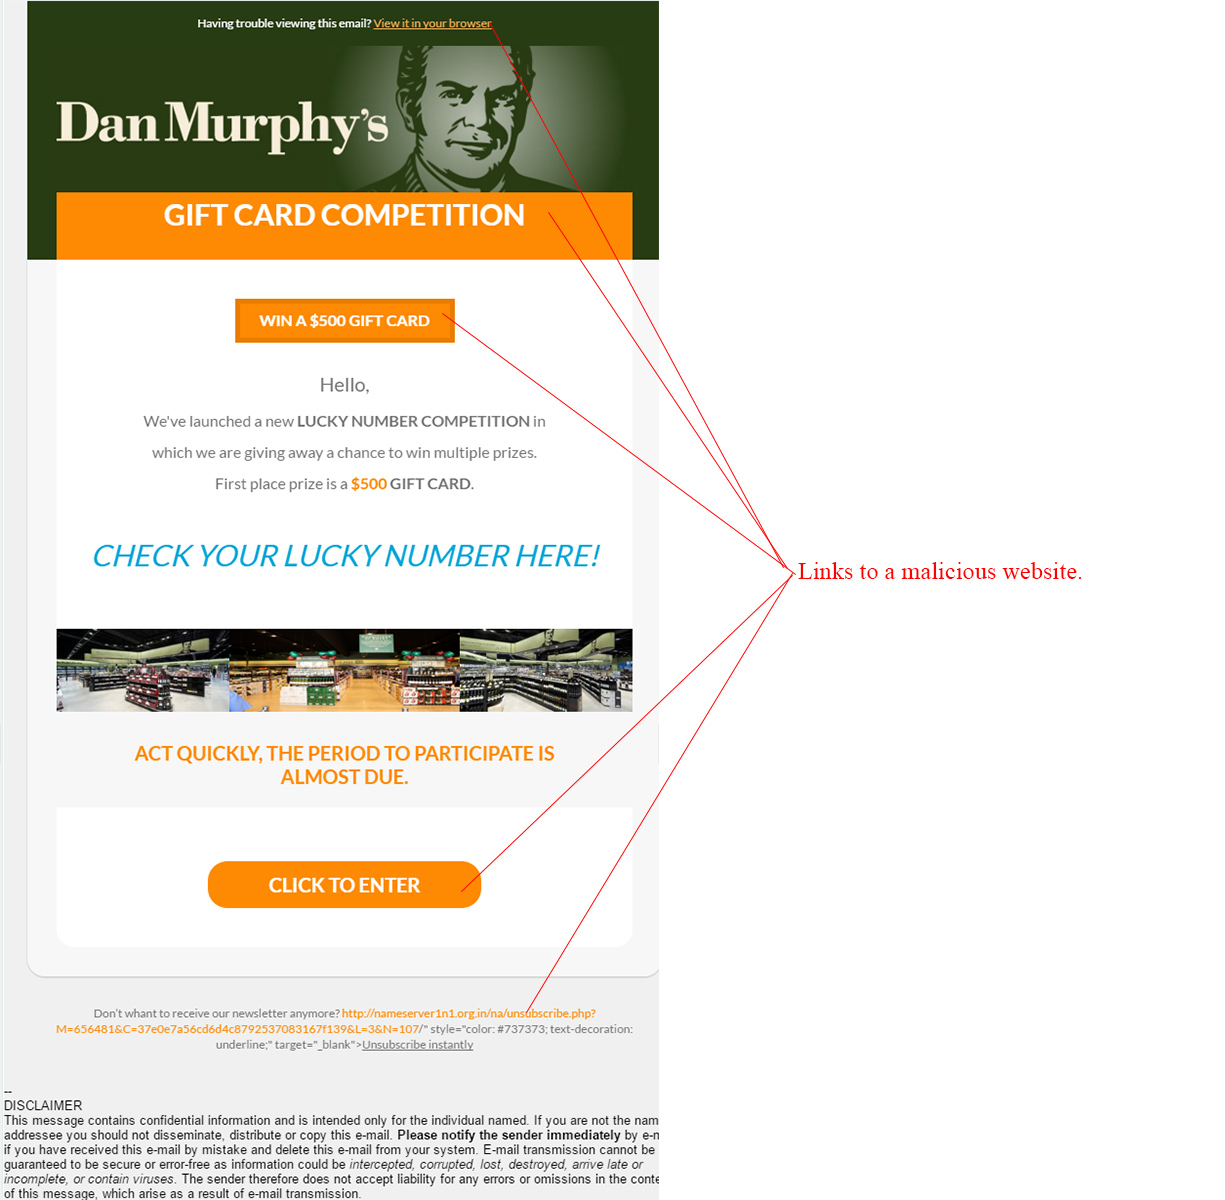 MailShark Dan Murphys Lucky Numbers Competition Scam